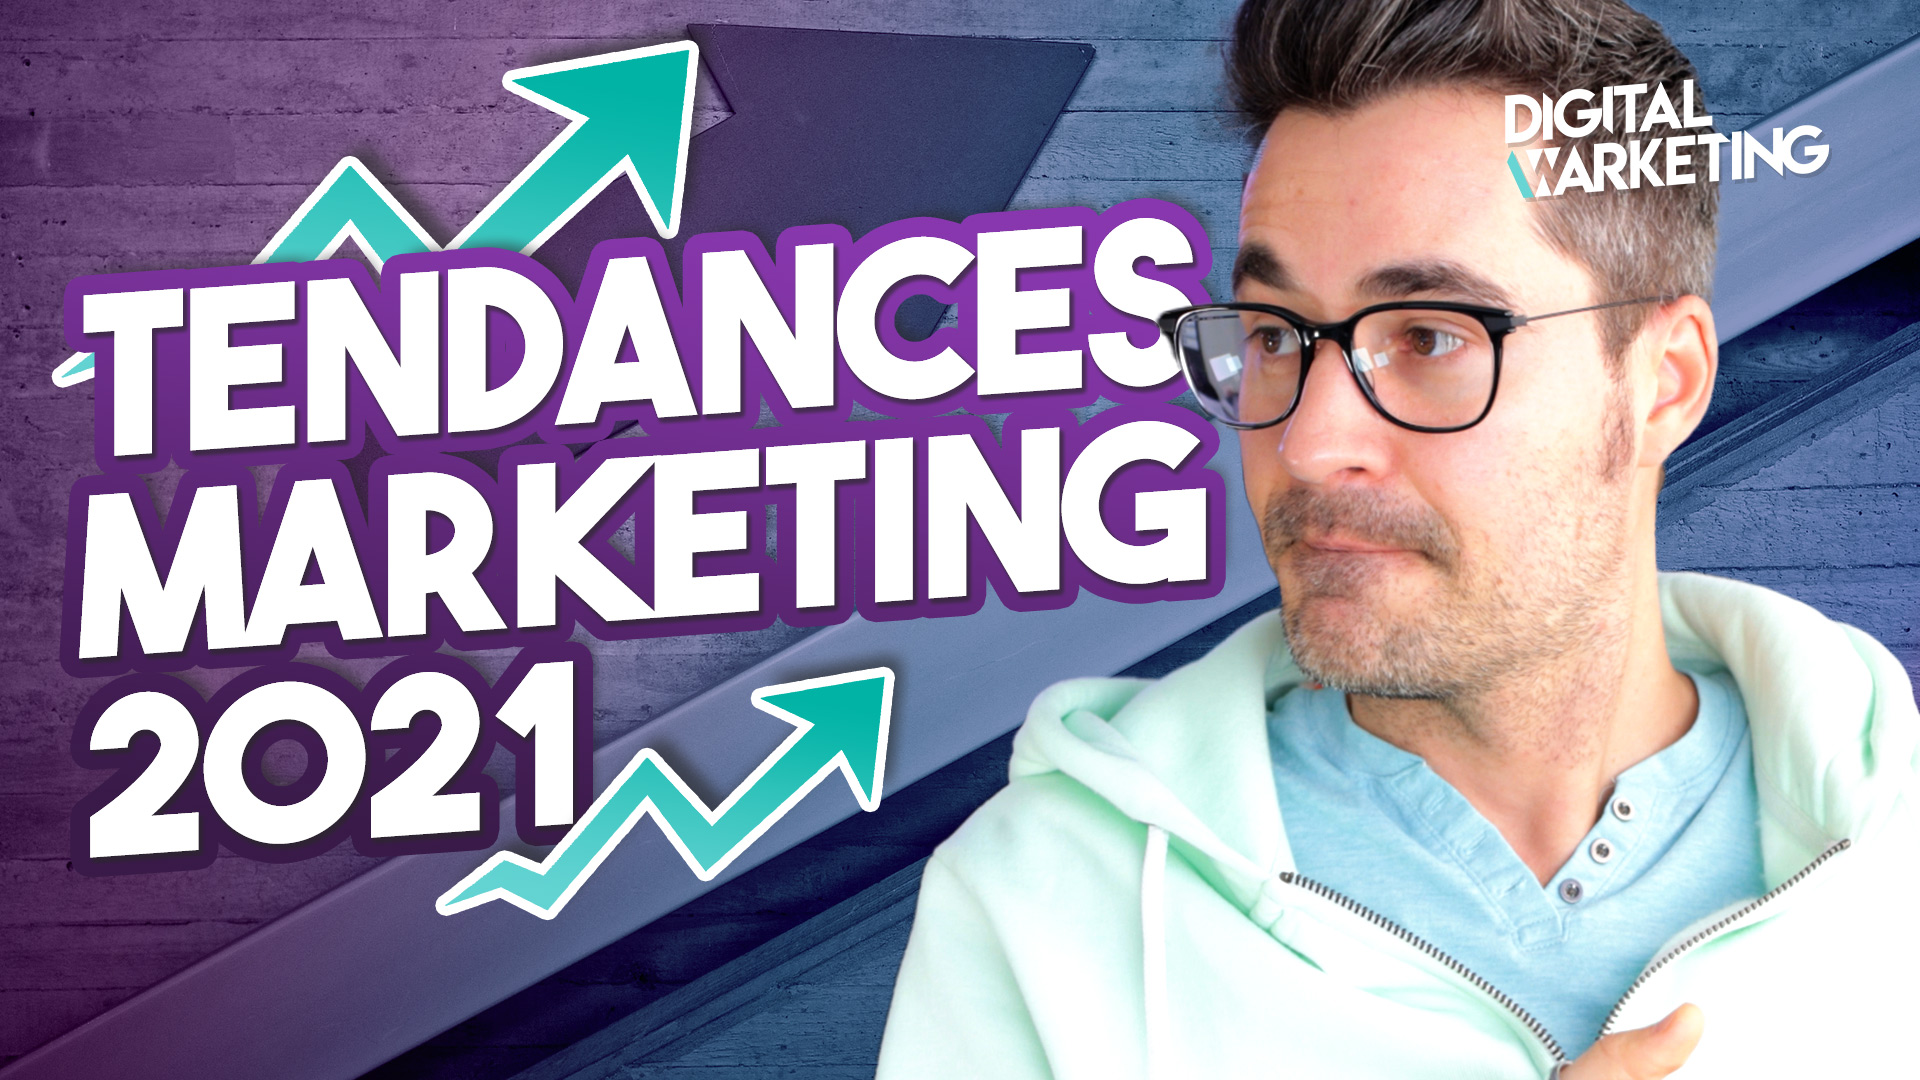 Tendances marketing digital 2021 – Boostez votre stratégie marketing numérique